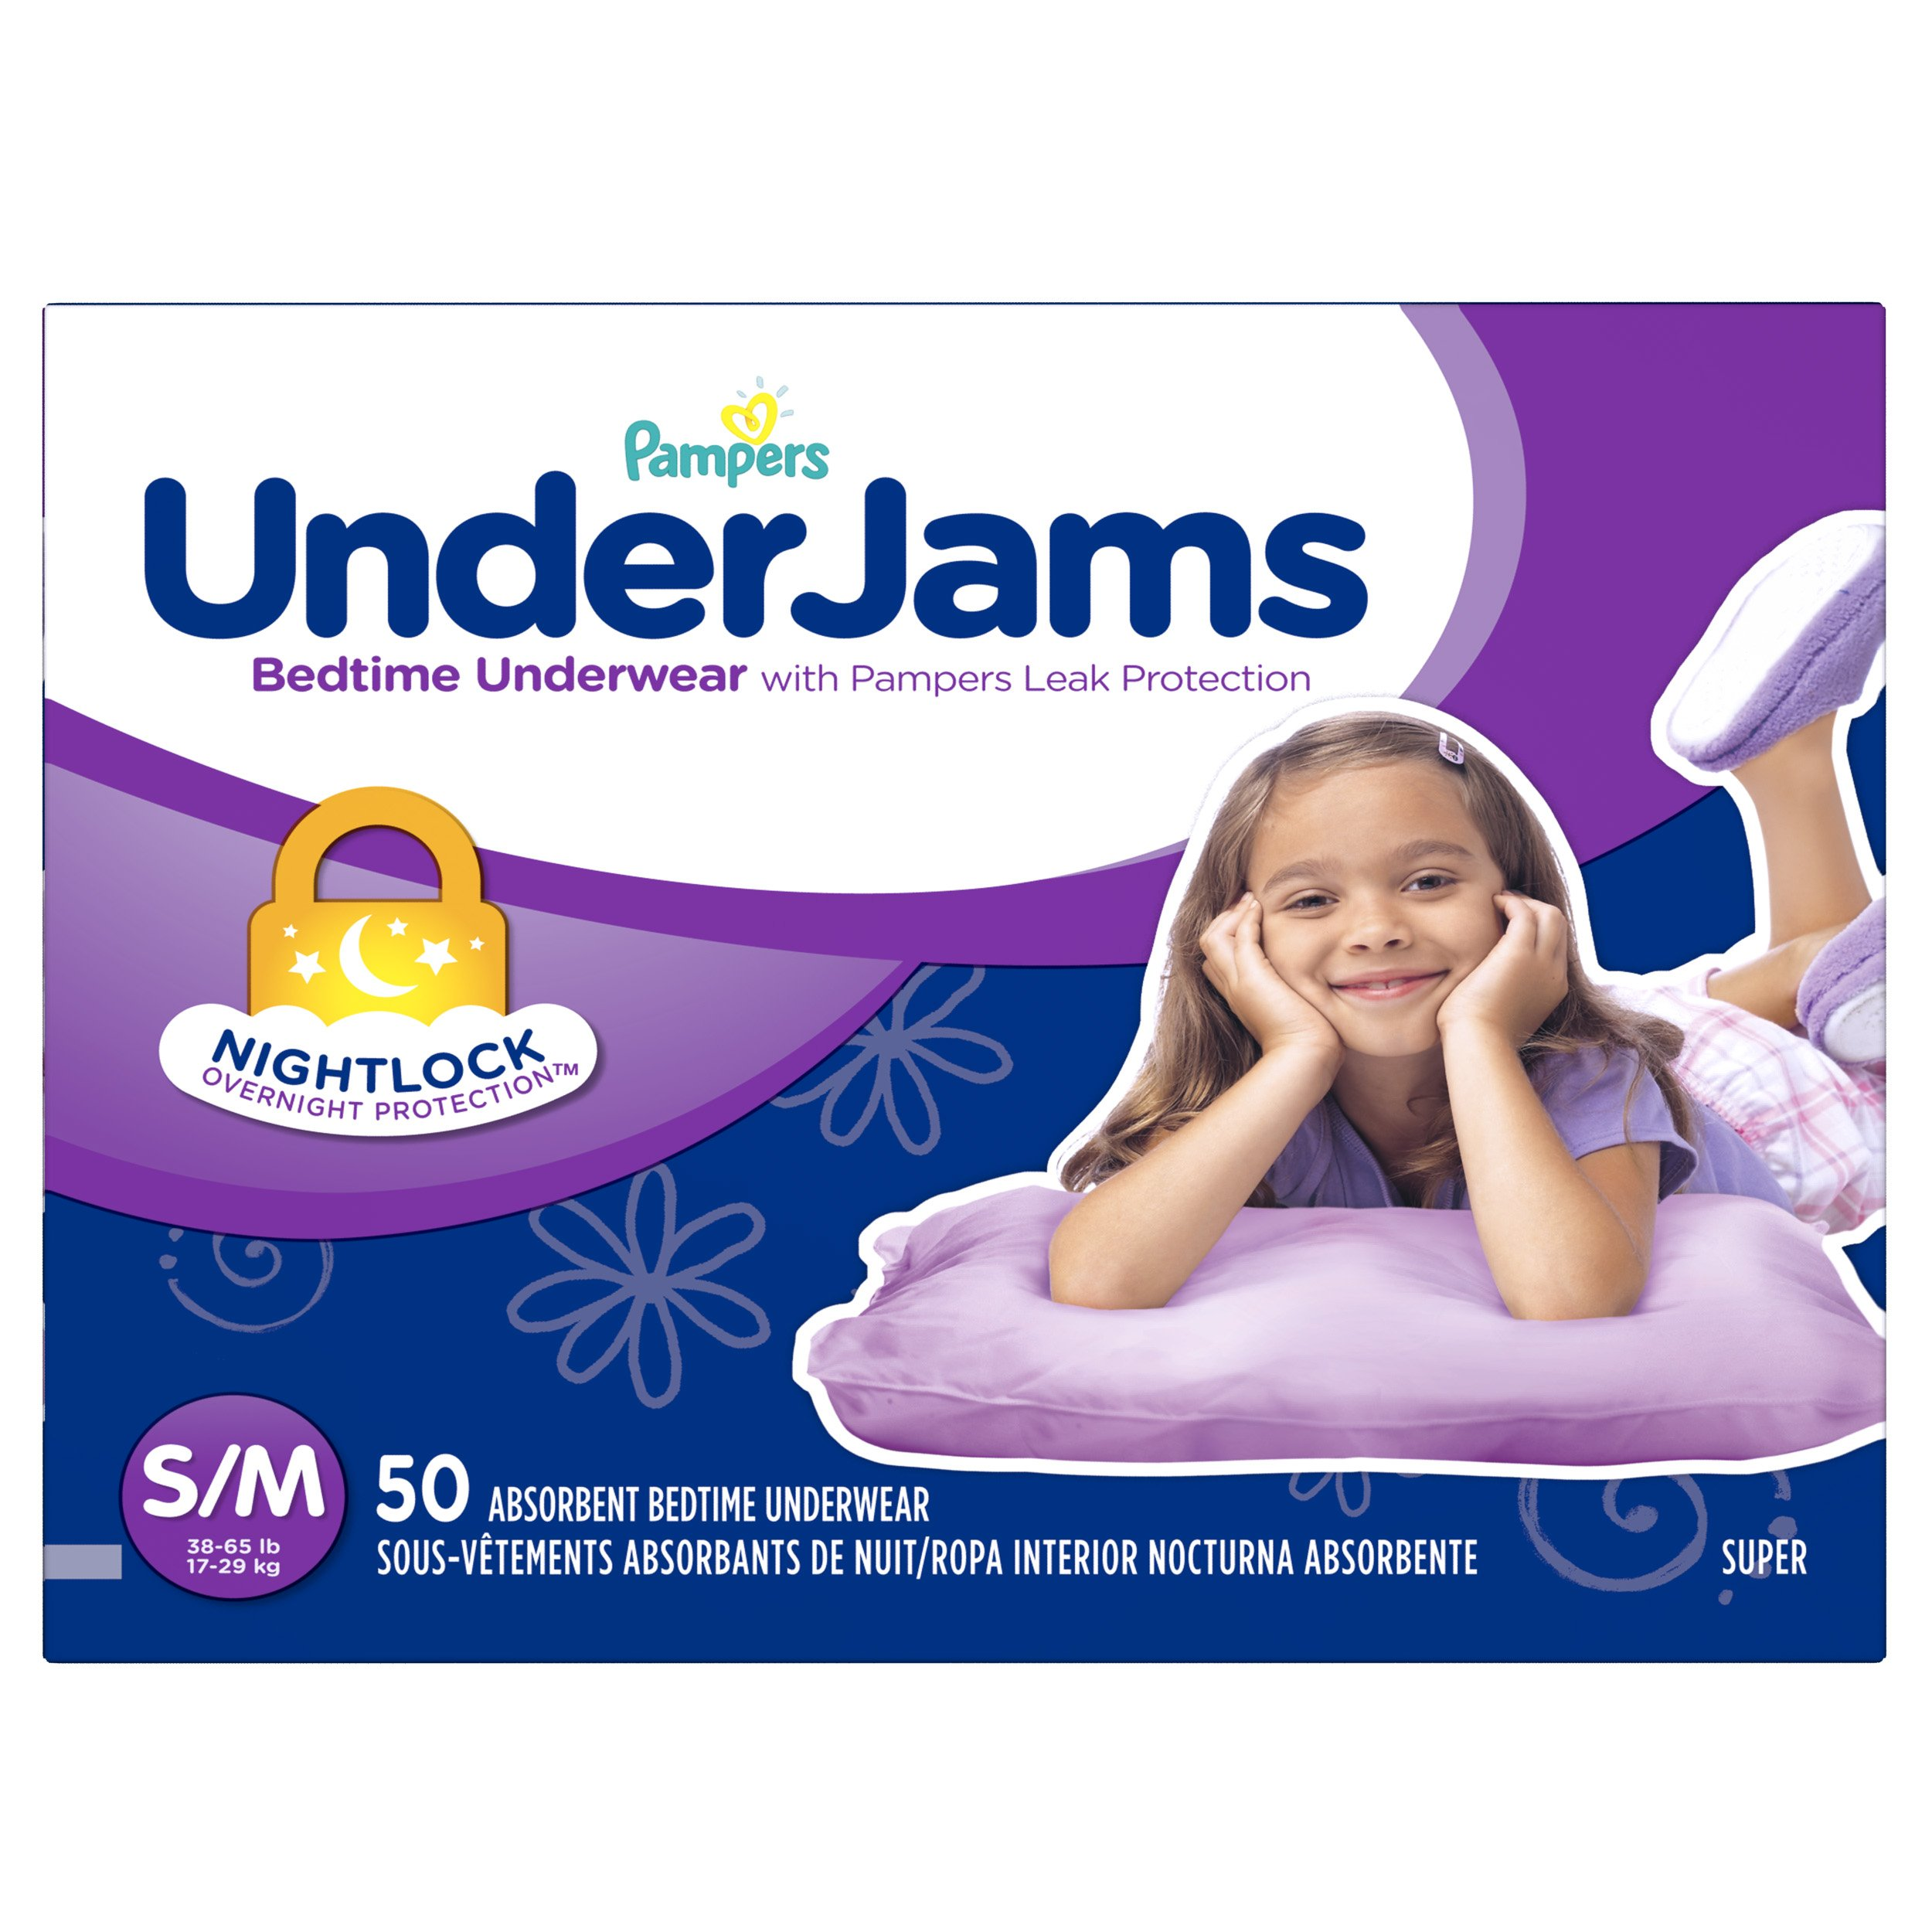 Pampers UnderJams Disposable Bedtime Underwear for Girls, Super Pack, Small/Medium (50 Count) by Pampers